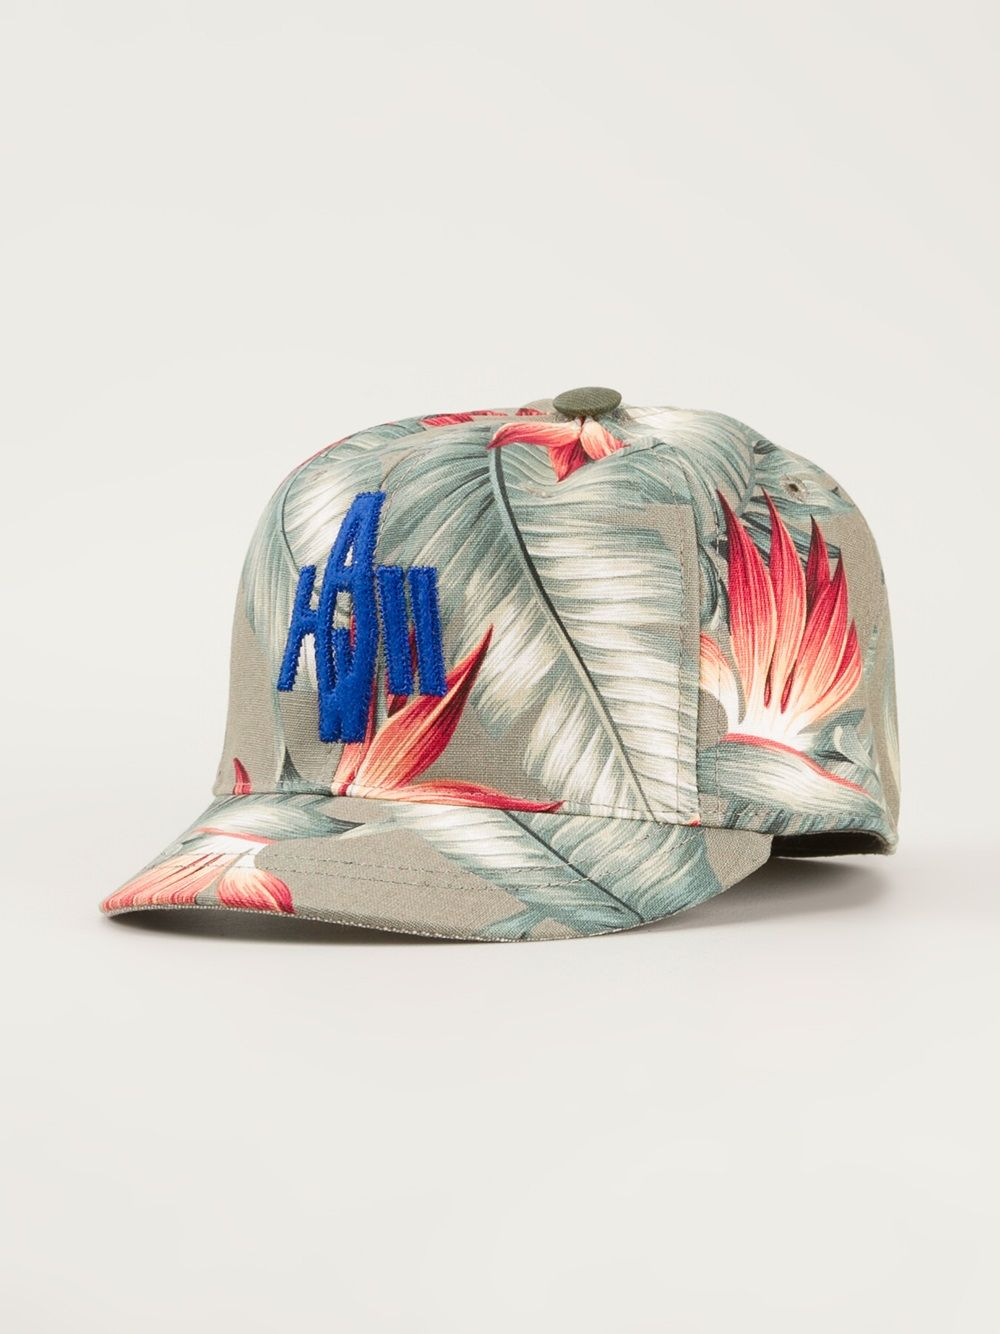 Shop GOLDEN GOOSE DELUXE BRAND 'Hawaii' cap from Farfetch